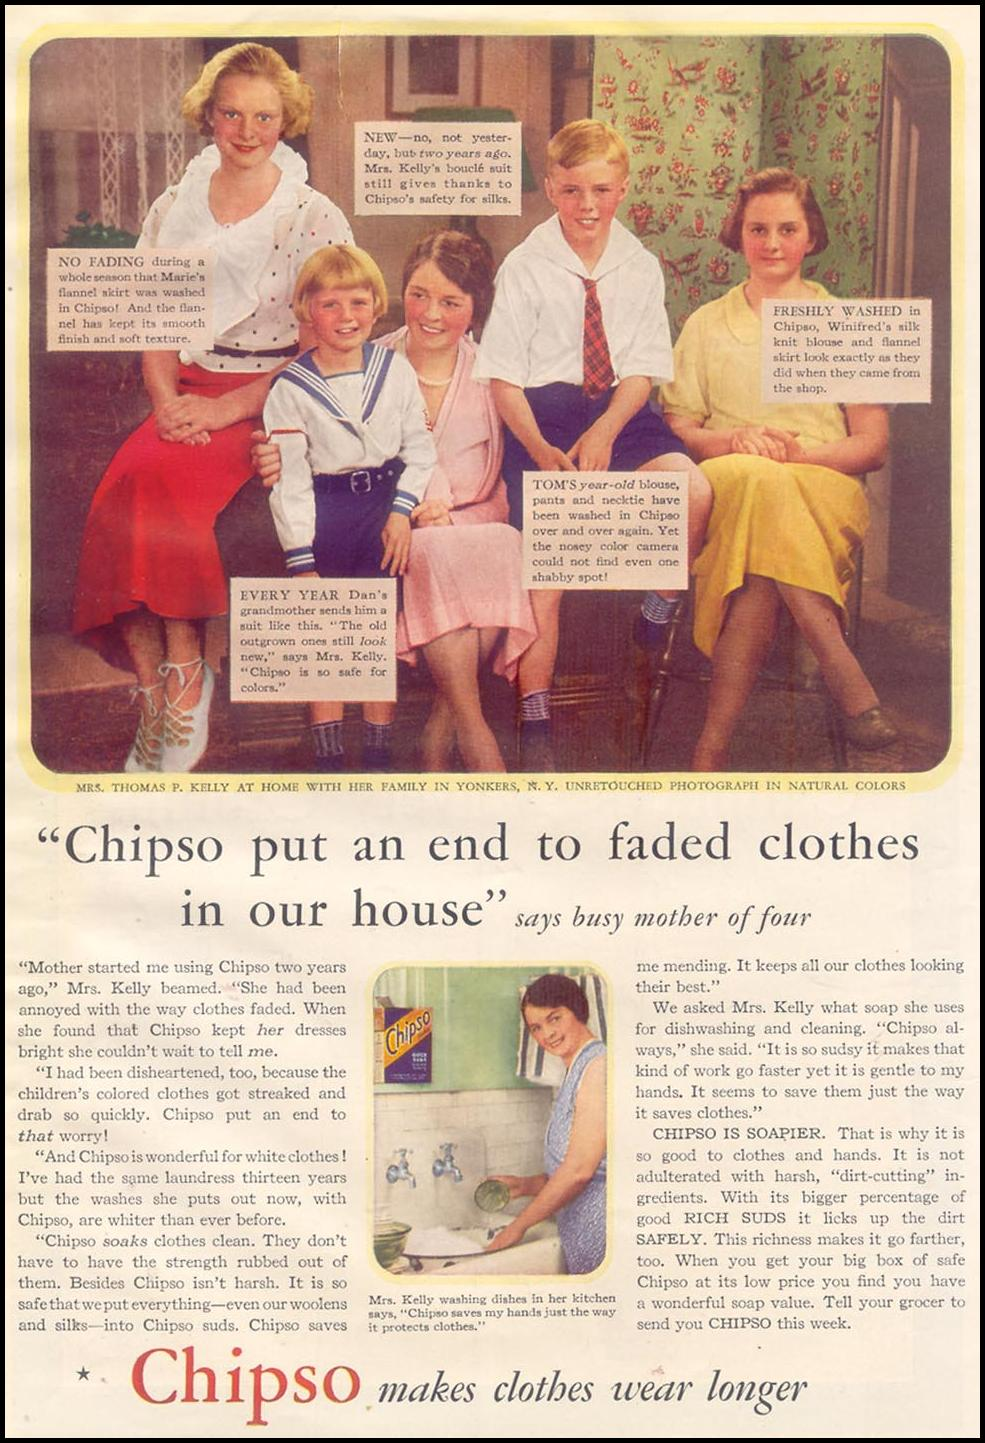 CHIPSO SOAP FLAKES GOOD HOUSEKEEPING 11/01/1933